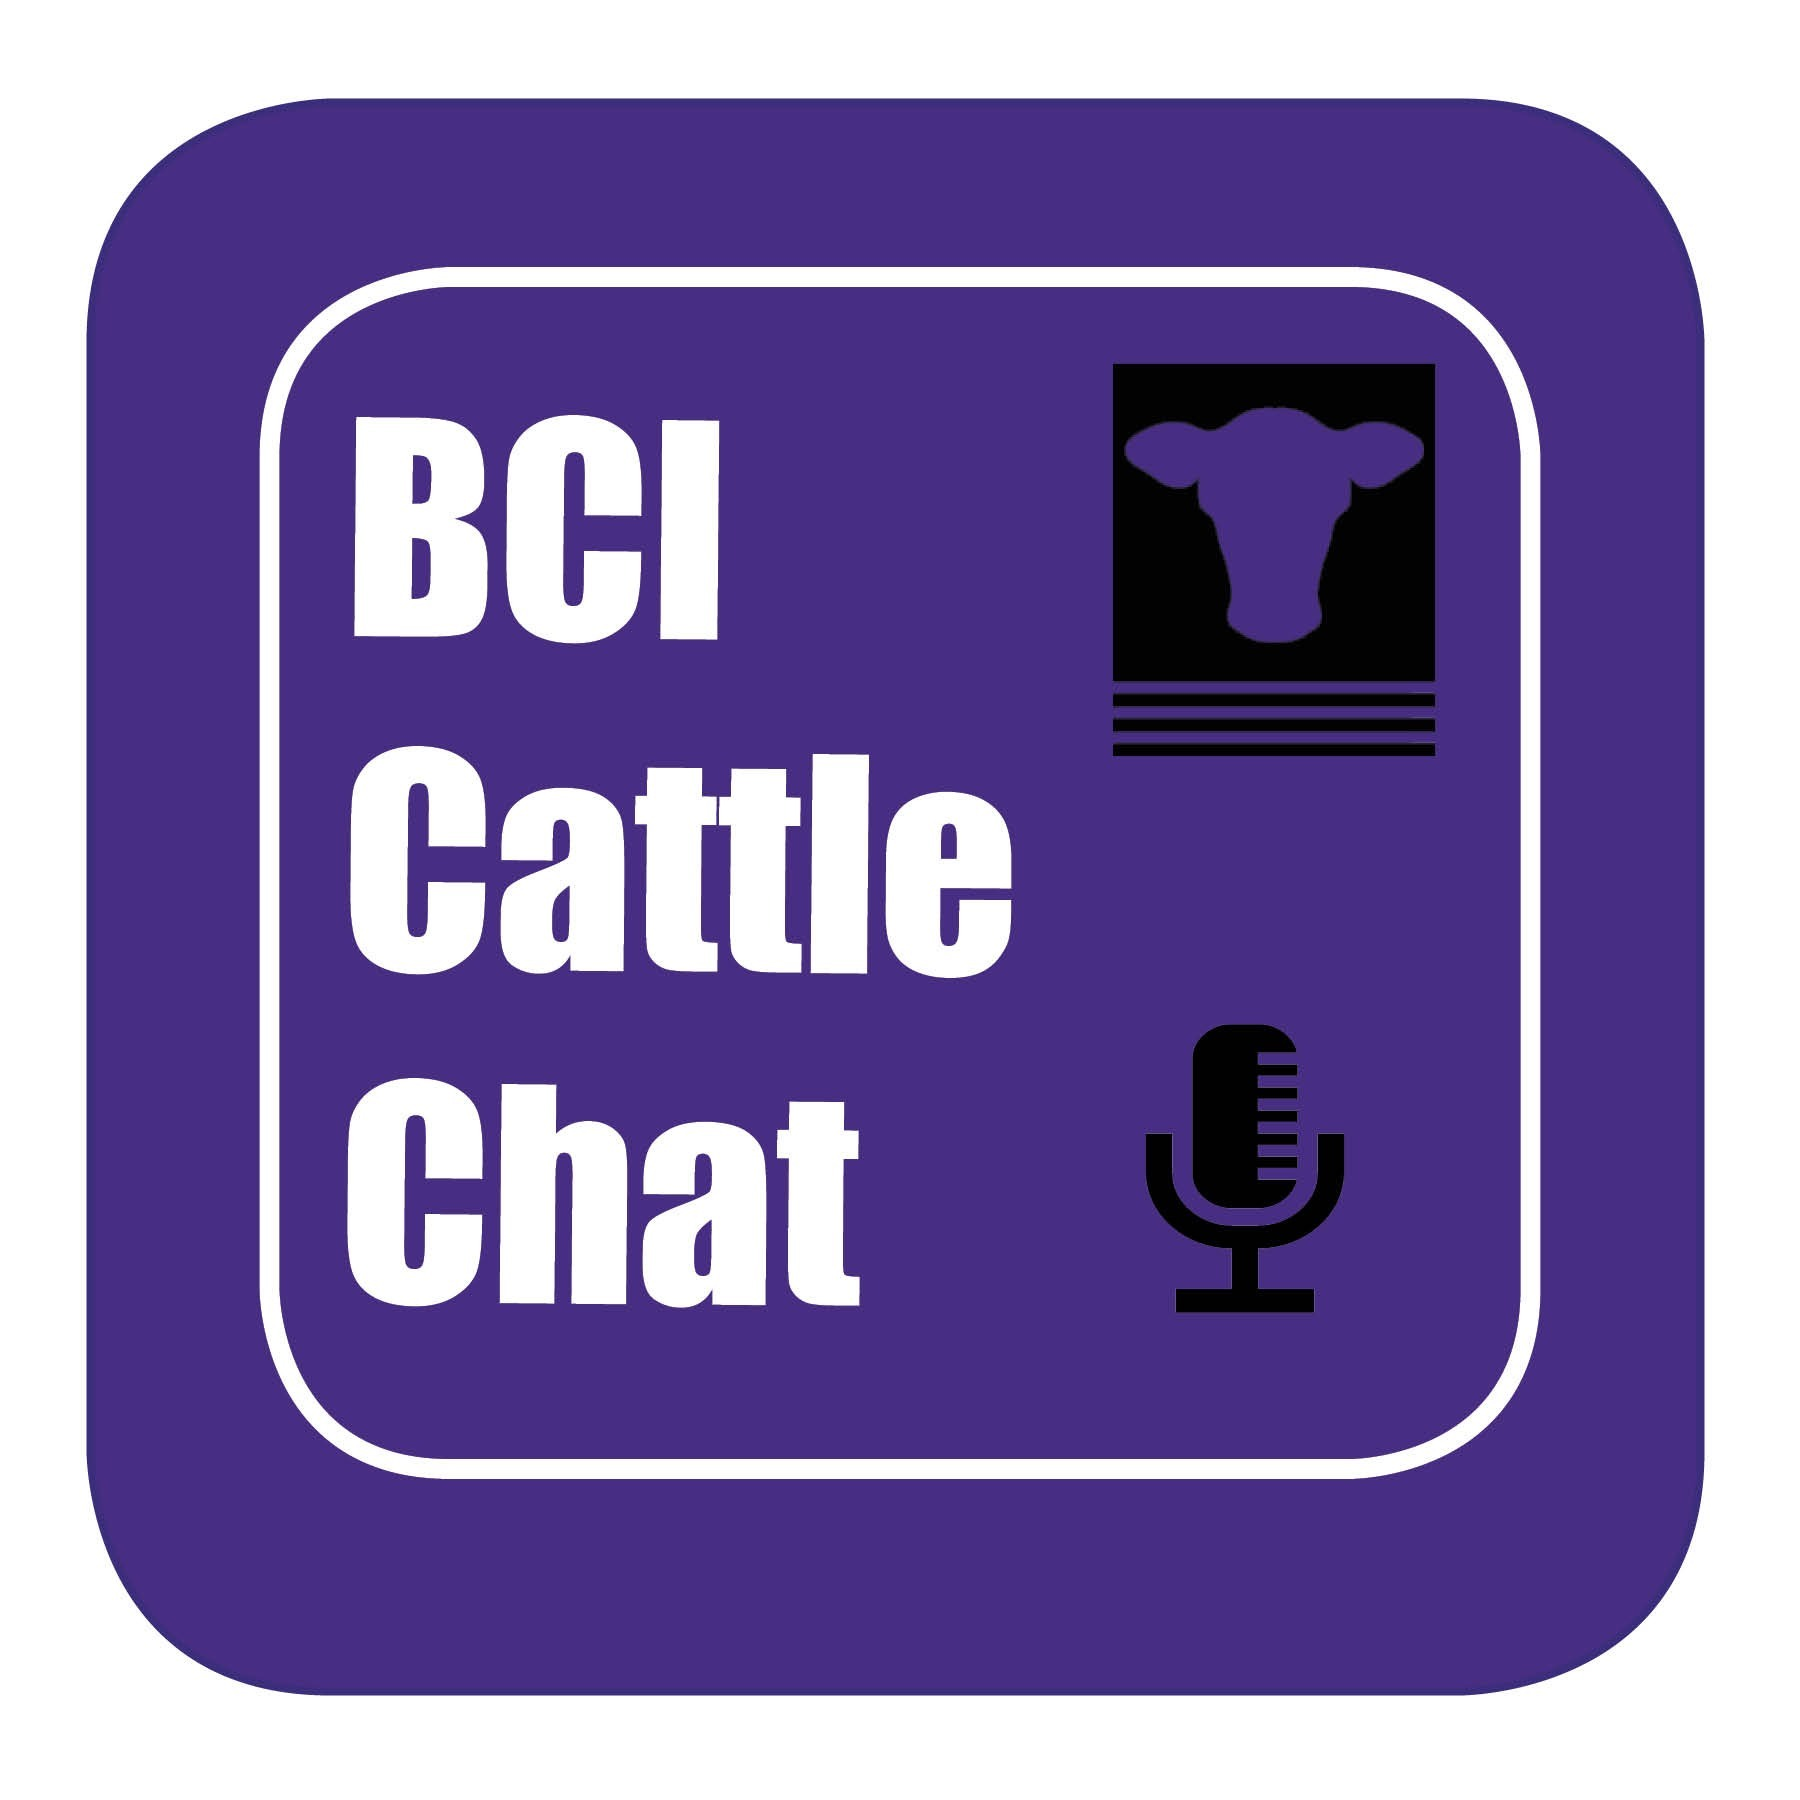 BCI Cattle Chat - Episode 57